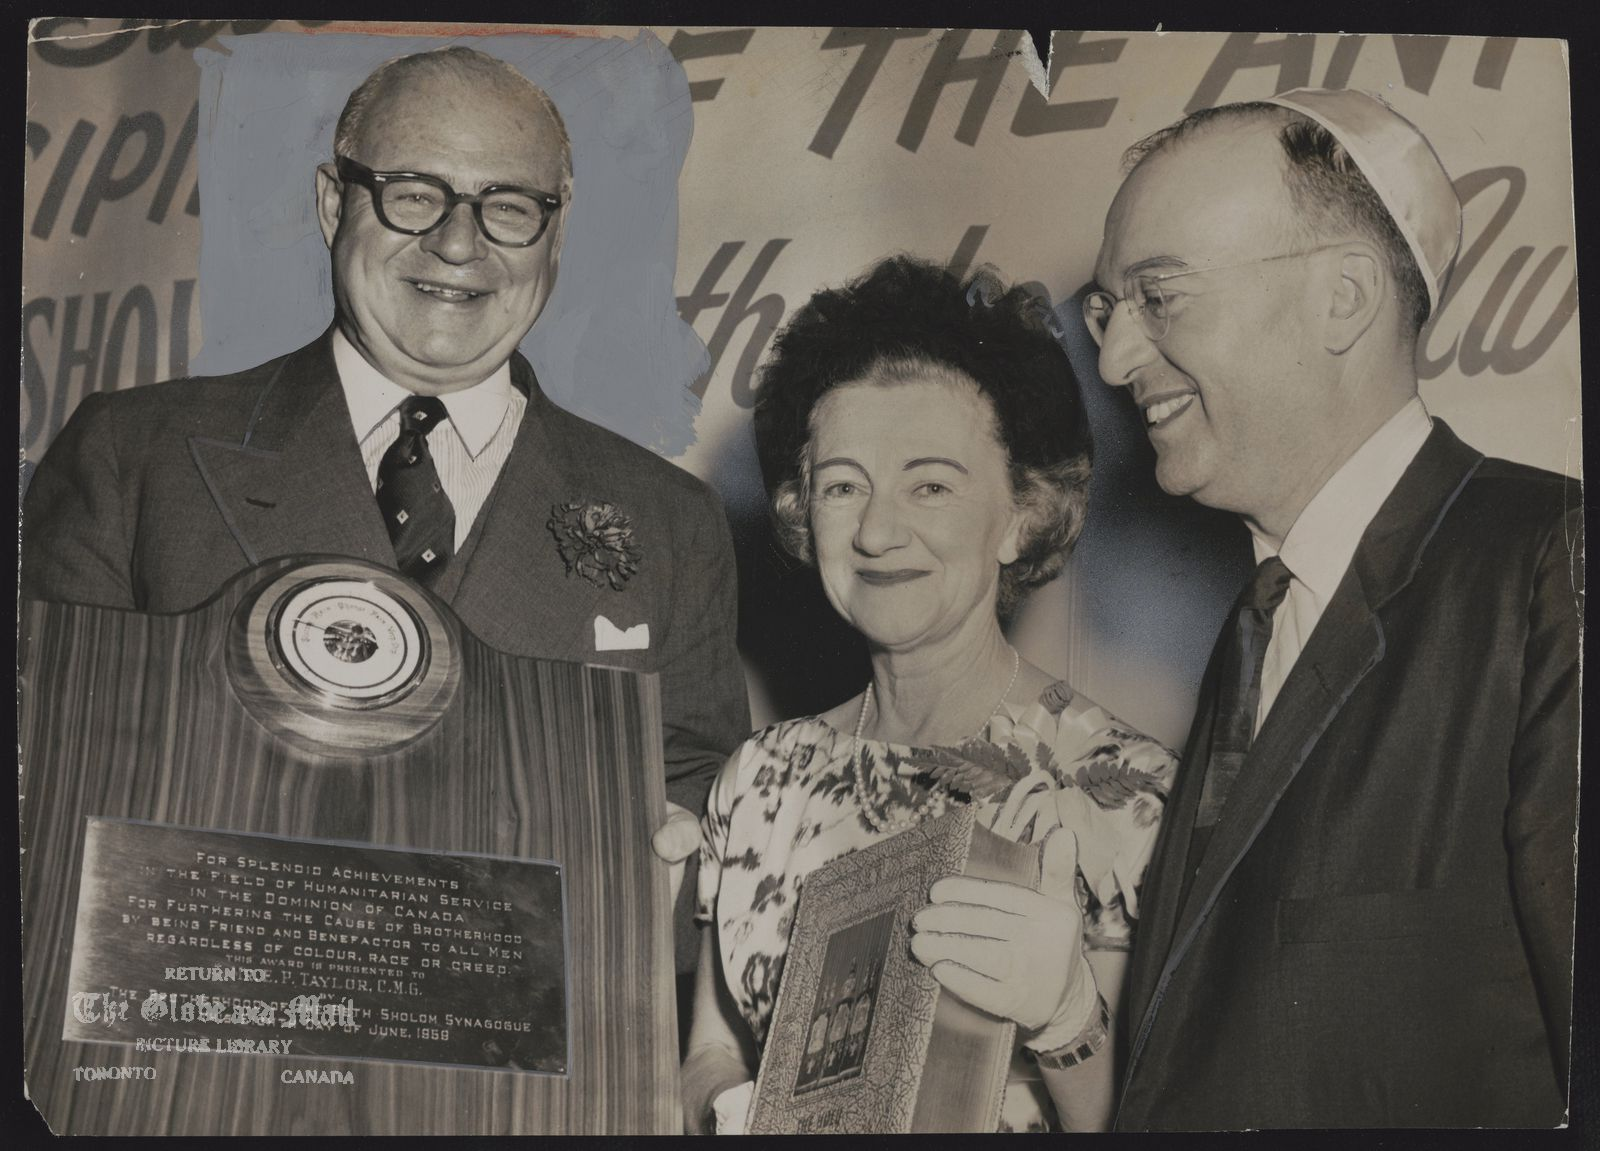 E.P. TAYLOR Toronto. Industrialist. E.P. Taylor, With Mrs. Taylor, Receives Brotherhood Award. Presentation for